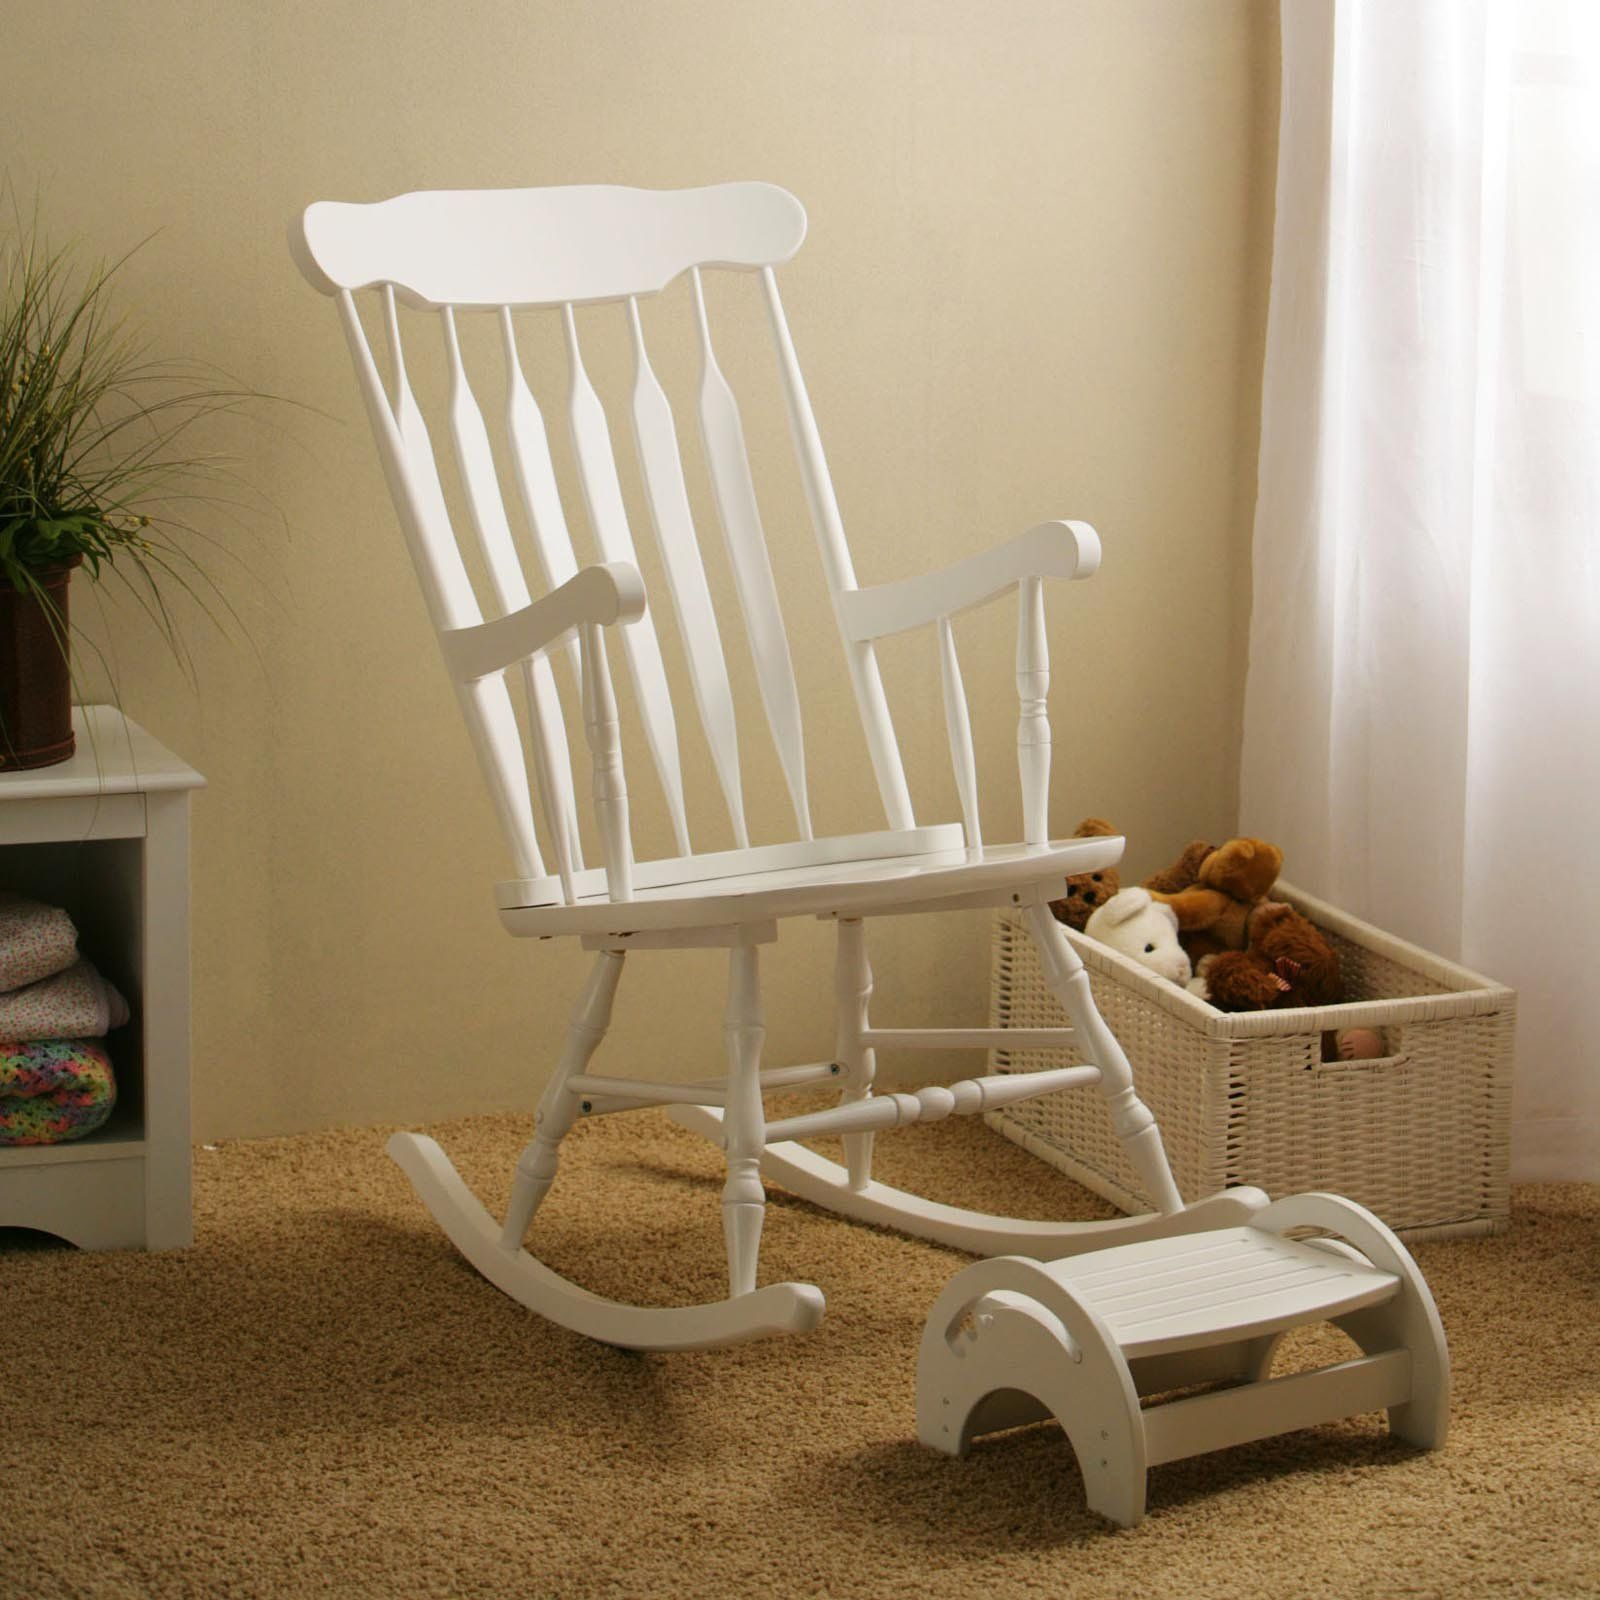 Rocking a newborn baby to sleep in a comfy nursery chair is a great way to bond with your new love while wooden rocking chairs are perfect for watching ... & Rocking a newborn baby to sleep in a comfy nursery chair is a great ...